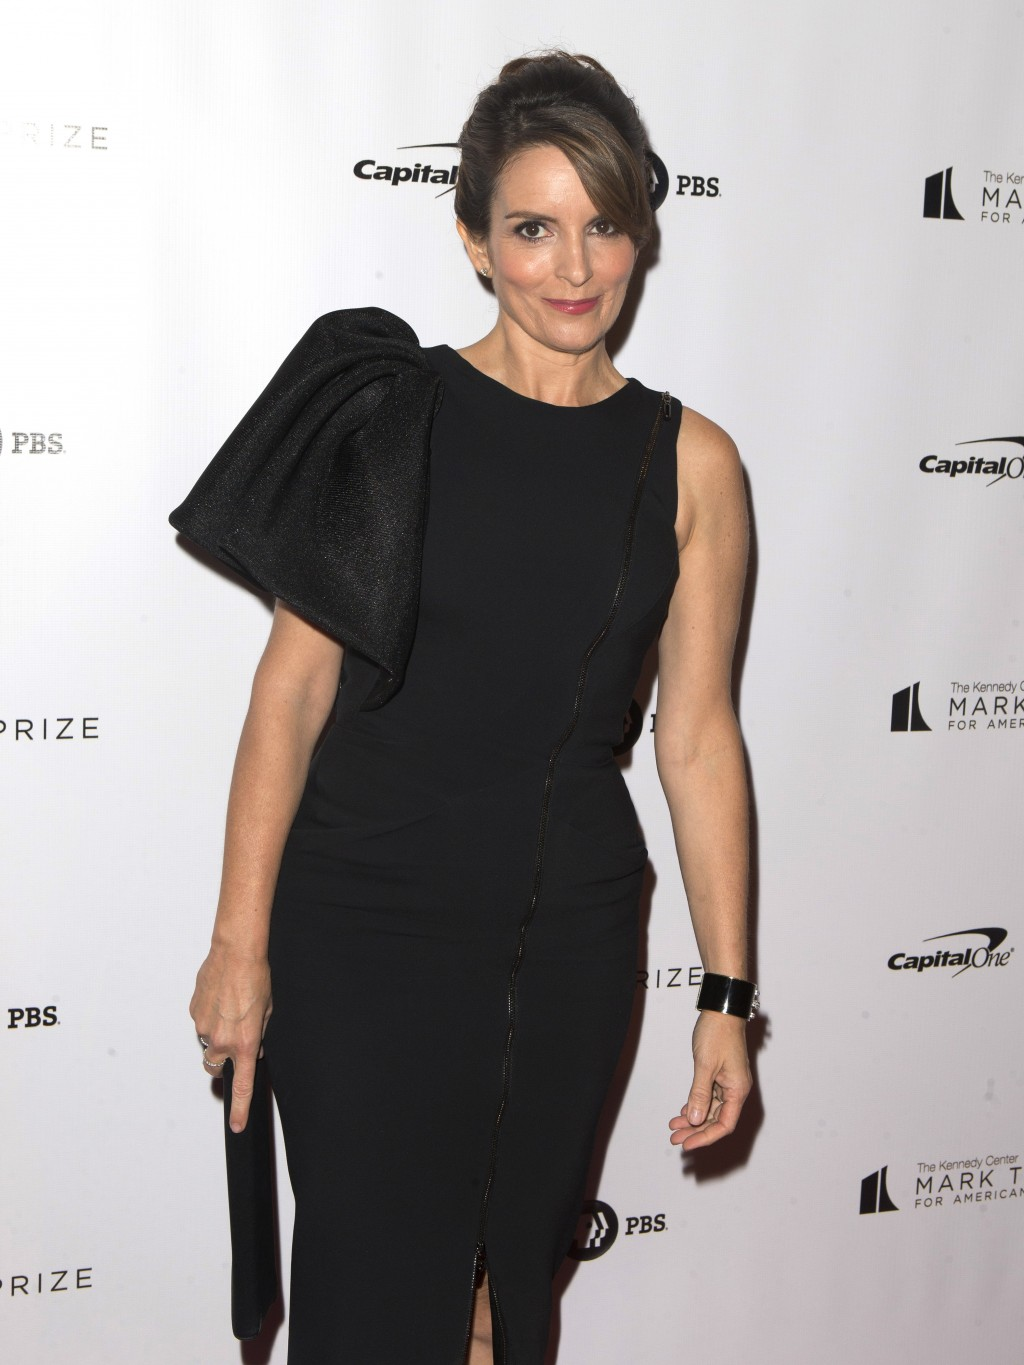 Tina Fey arrives at the Kennedy Center for the Performing Arts for the 21st Annual Mark Twain Prize for American Humor presented to Julia Louis-Dreyfu